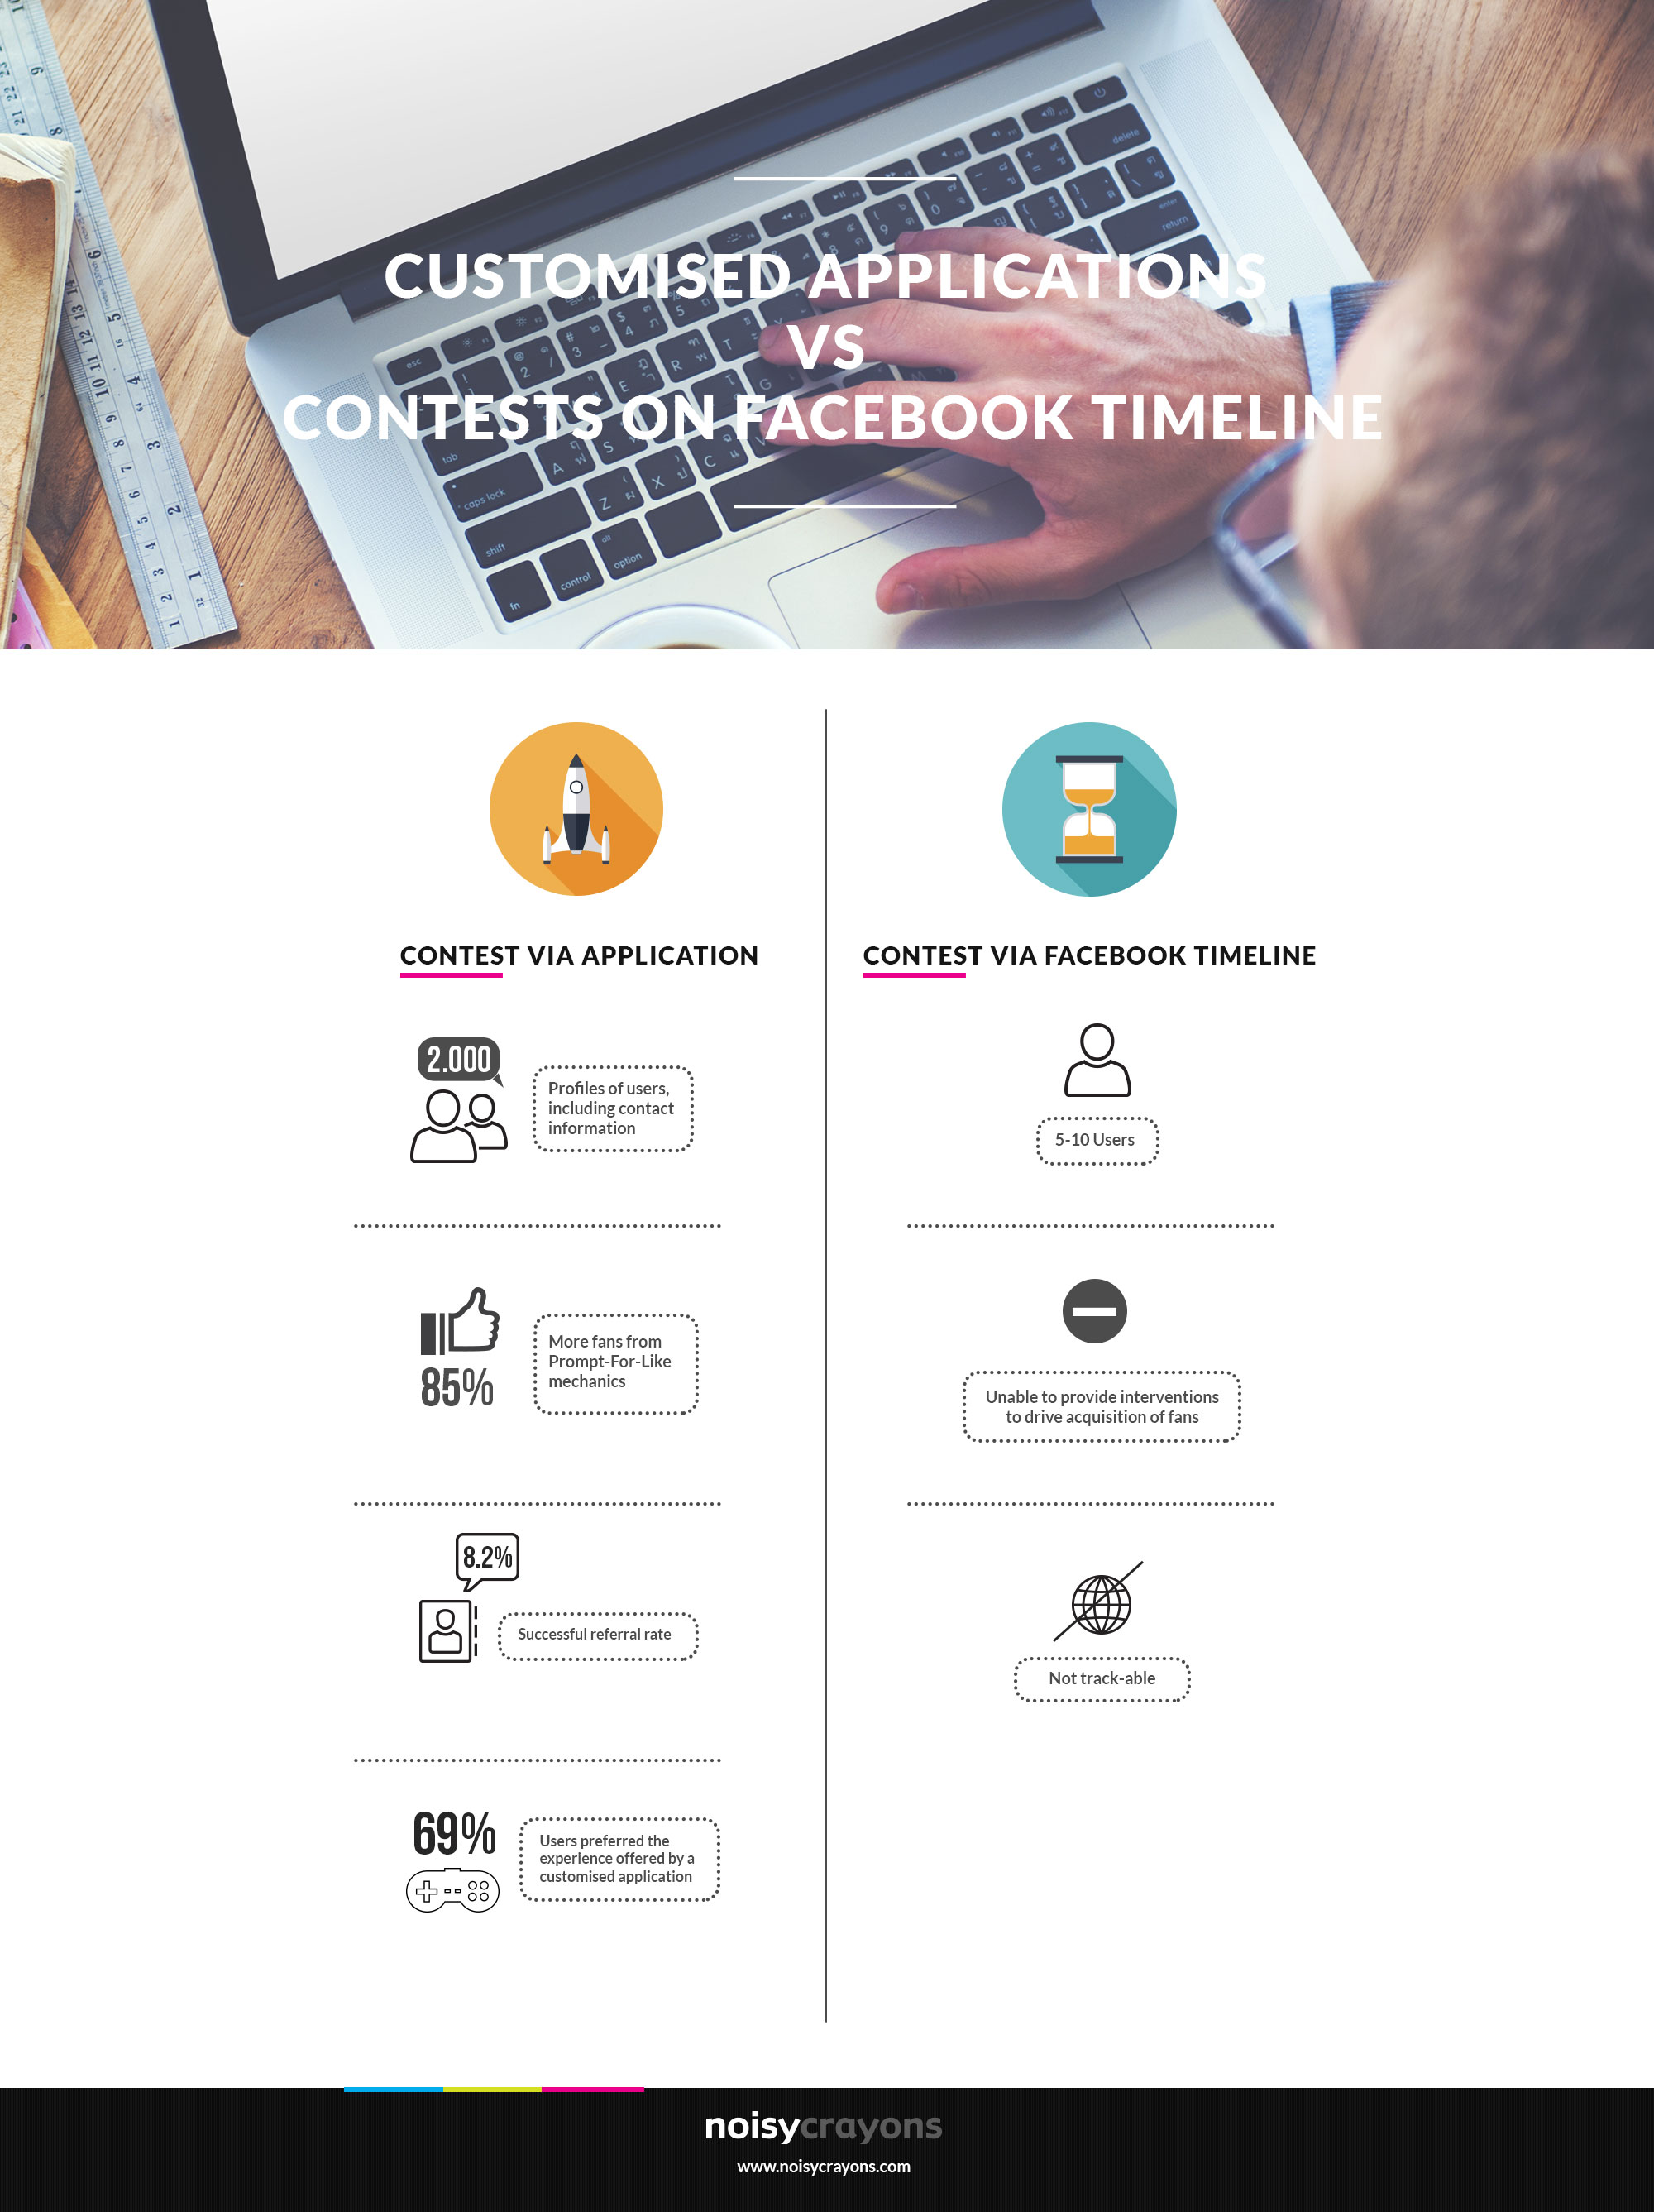 Facebook Applications and Contests on Facebook Timeline